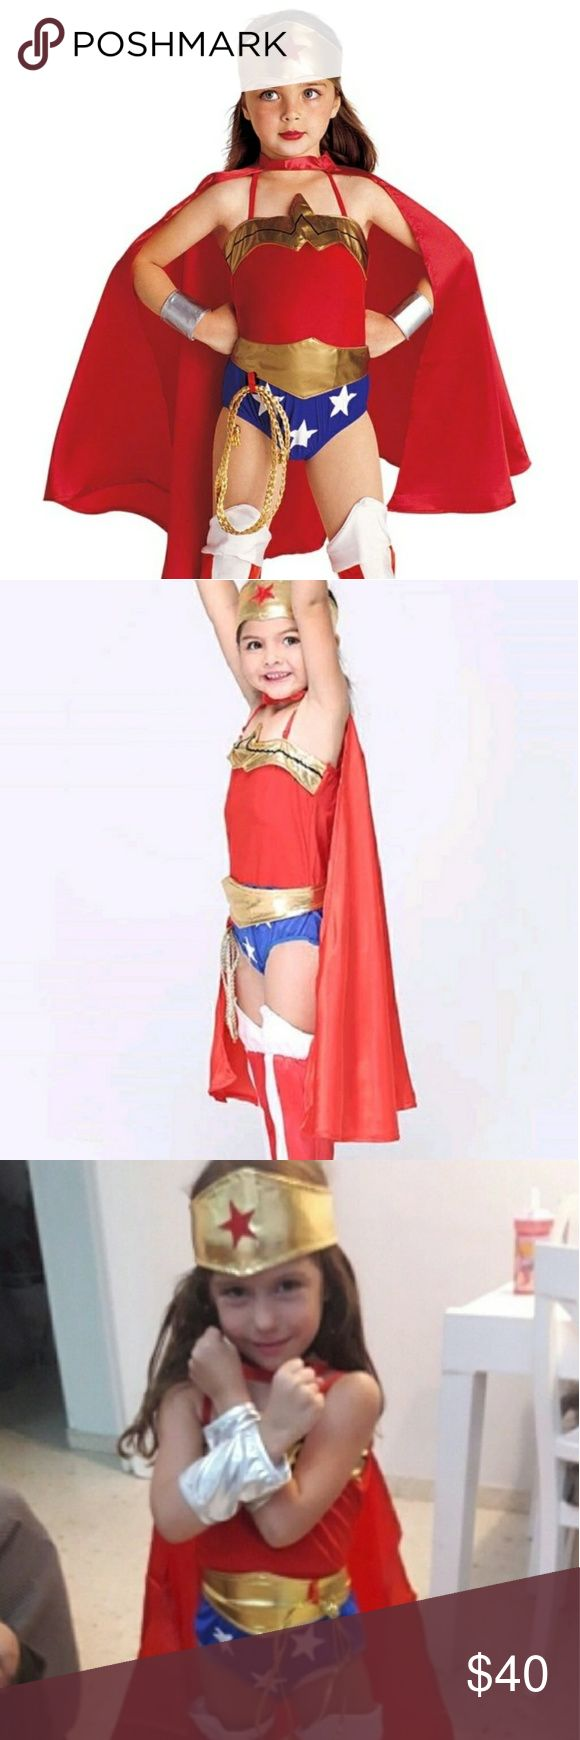 Wonder Woman costume for girls Wonder Woman costume comes with leotard, belt with detachable lasso, knee boot covers, headband,wristbands AND cape! Sizes available from 3T to size 12 in youth. Message me indicating what size you need after you complete your purchase. All sizes standard U. S. sizes. Costumes Halloween